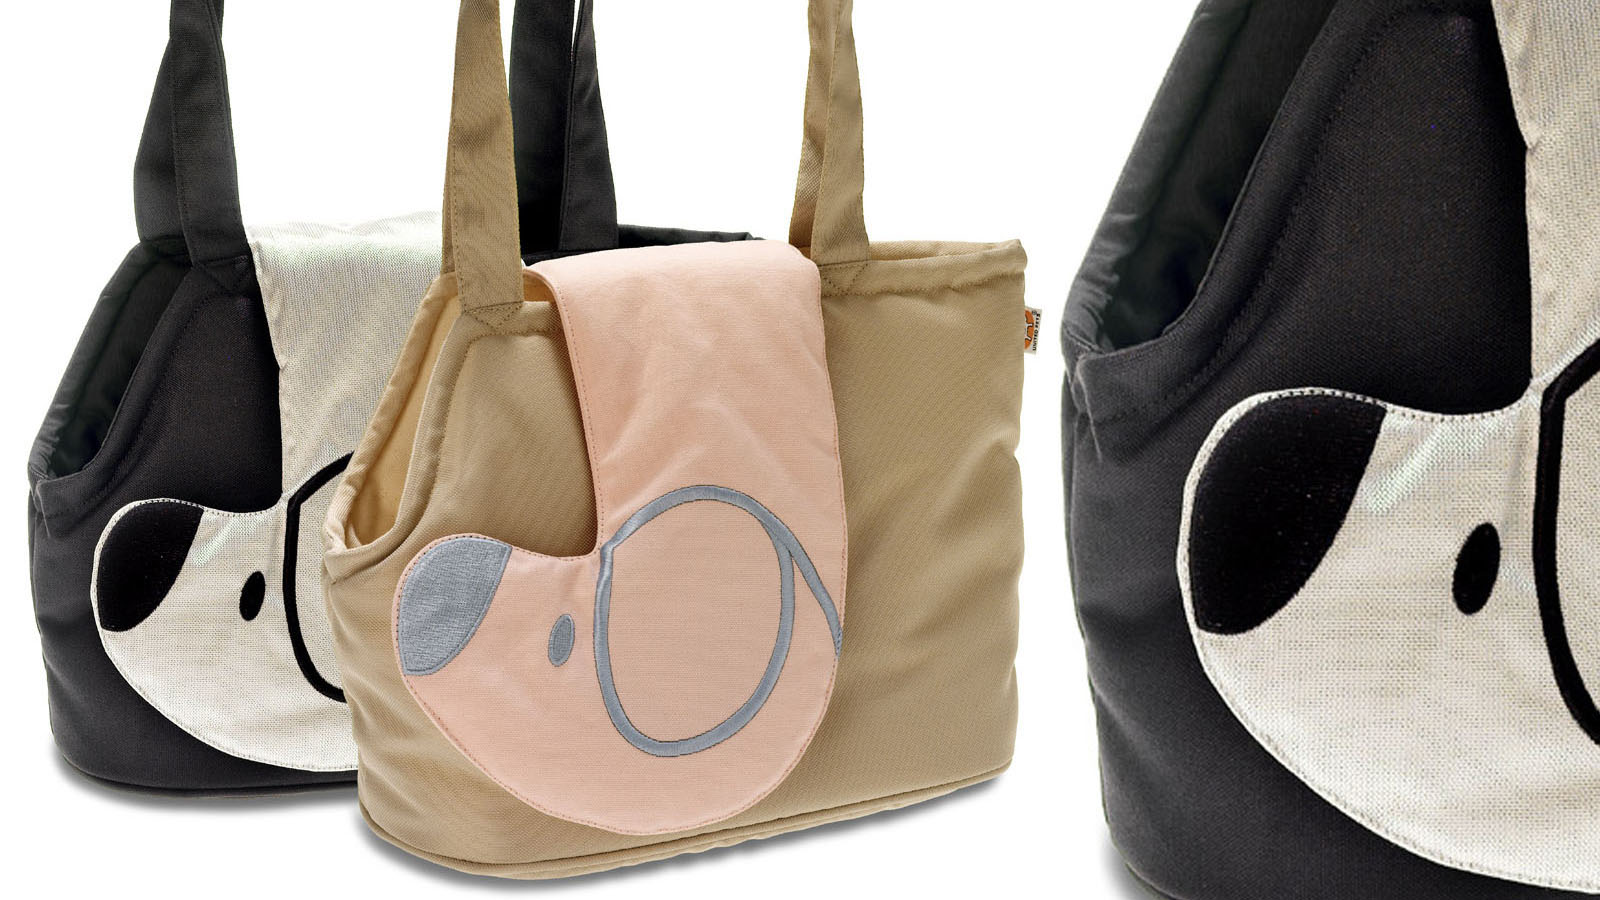 doggy-bag-collection-united-pets-a-spalla